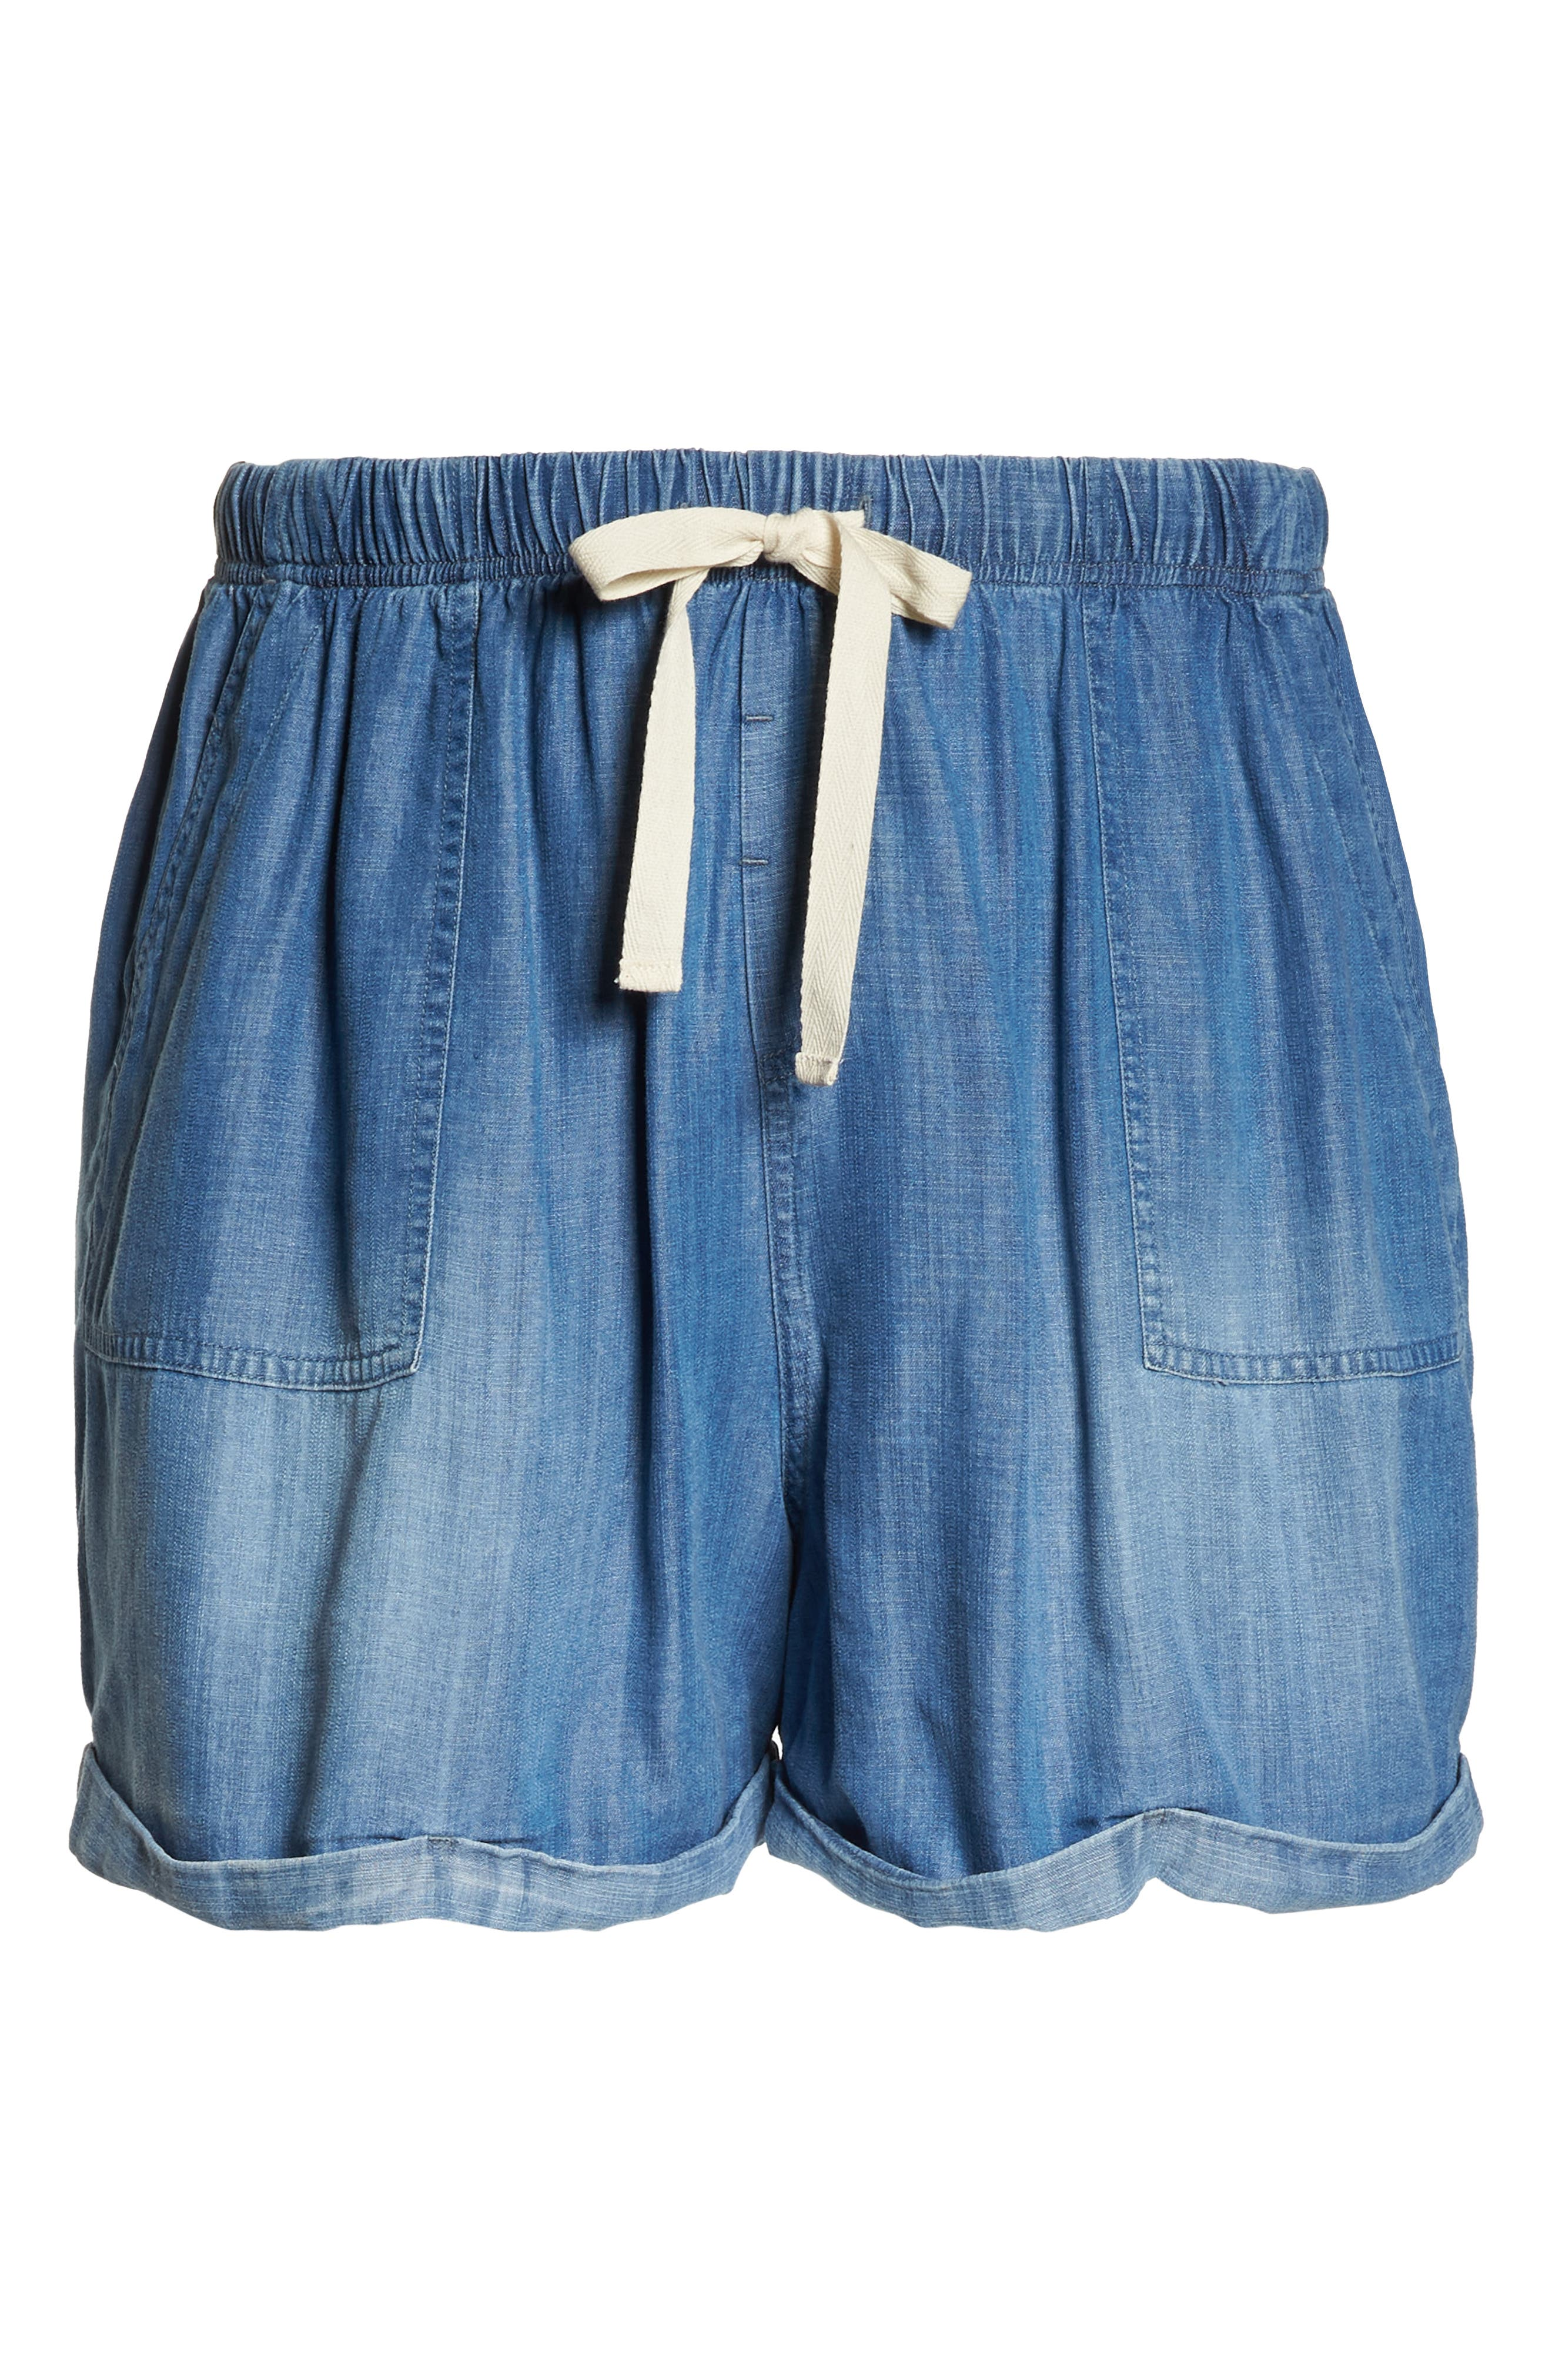 Drawstring Chambray Shorts,                             Alternate thumbnail 7, color,                             MEDIUM WASH